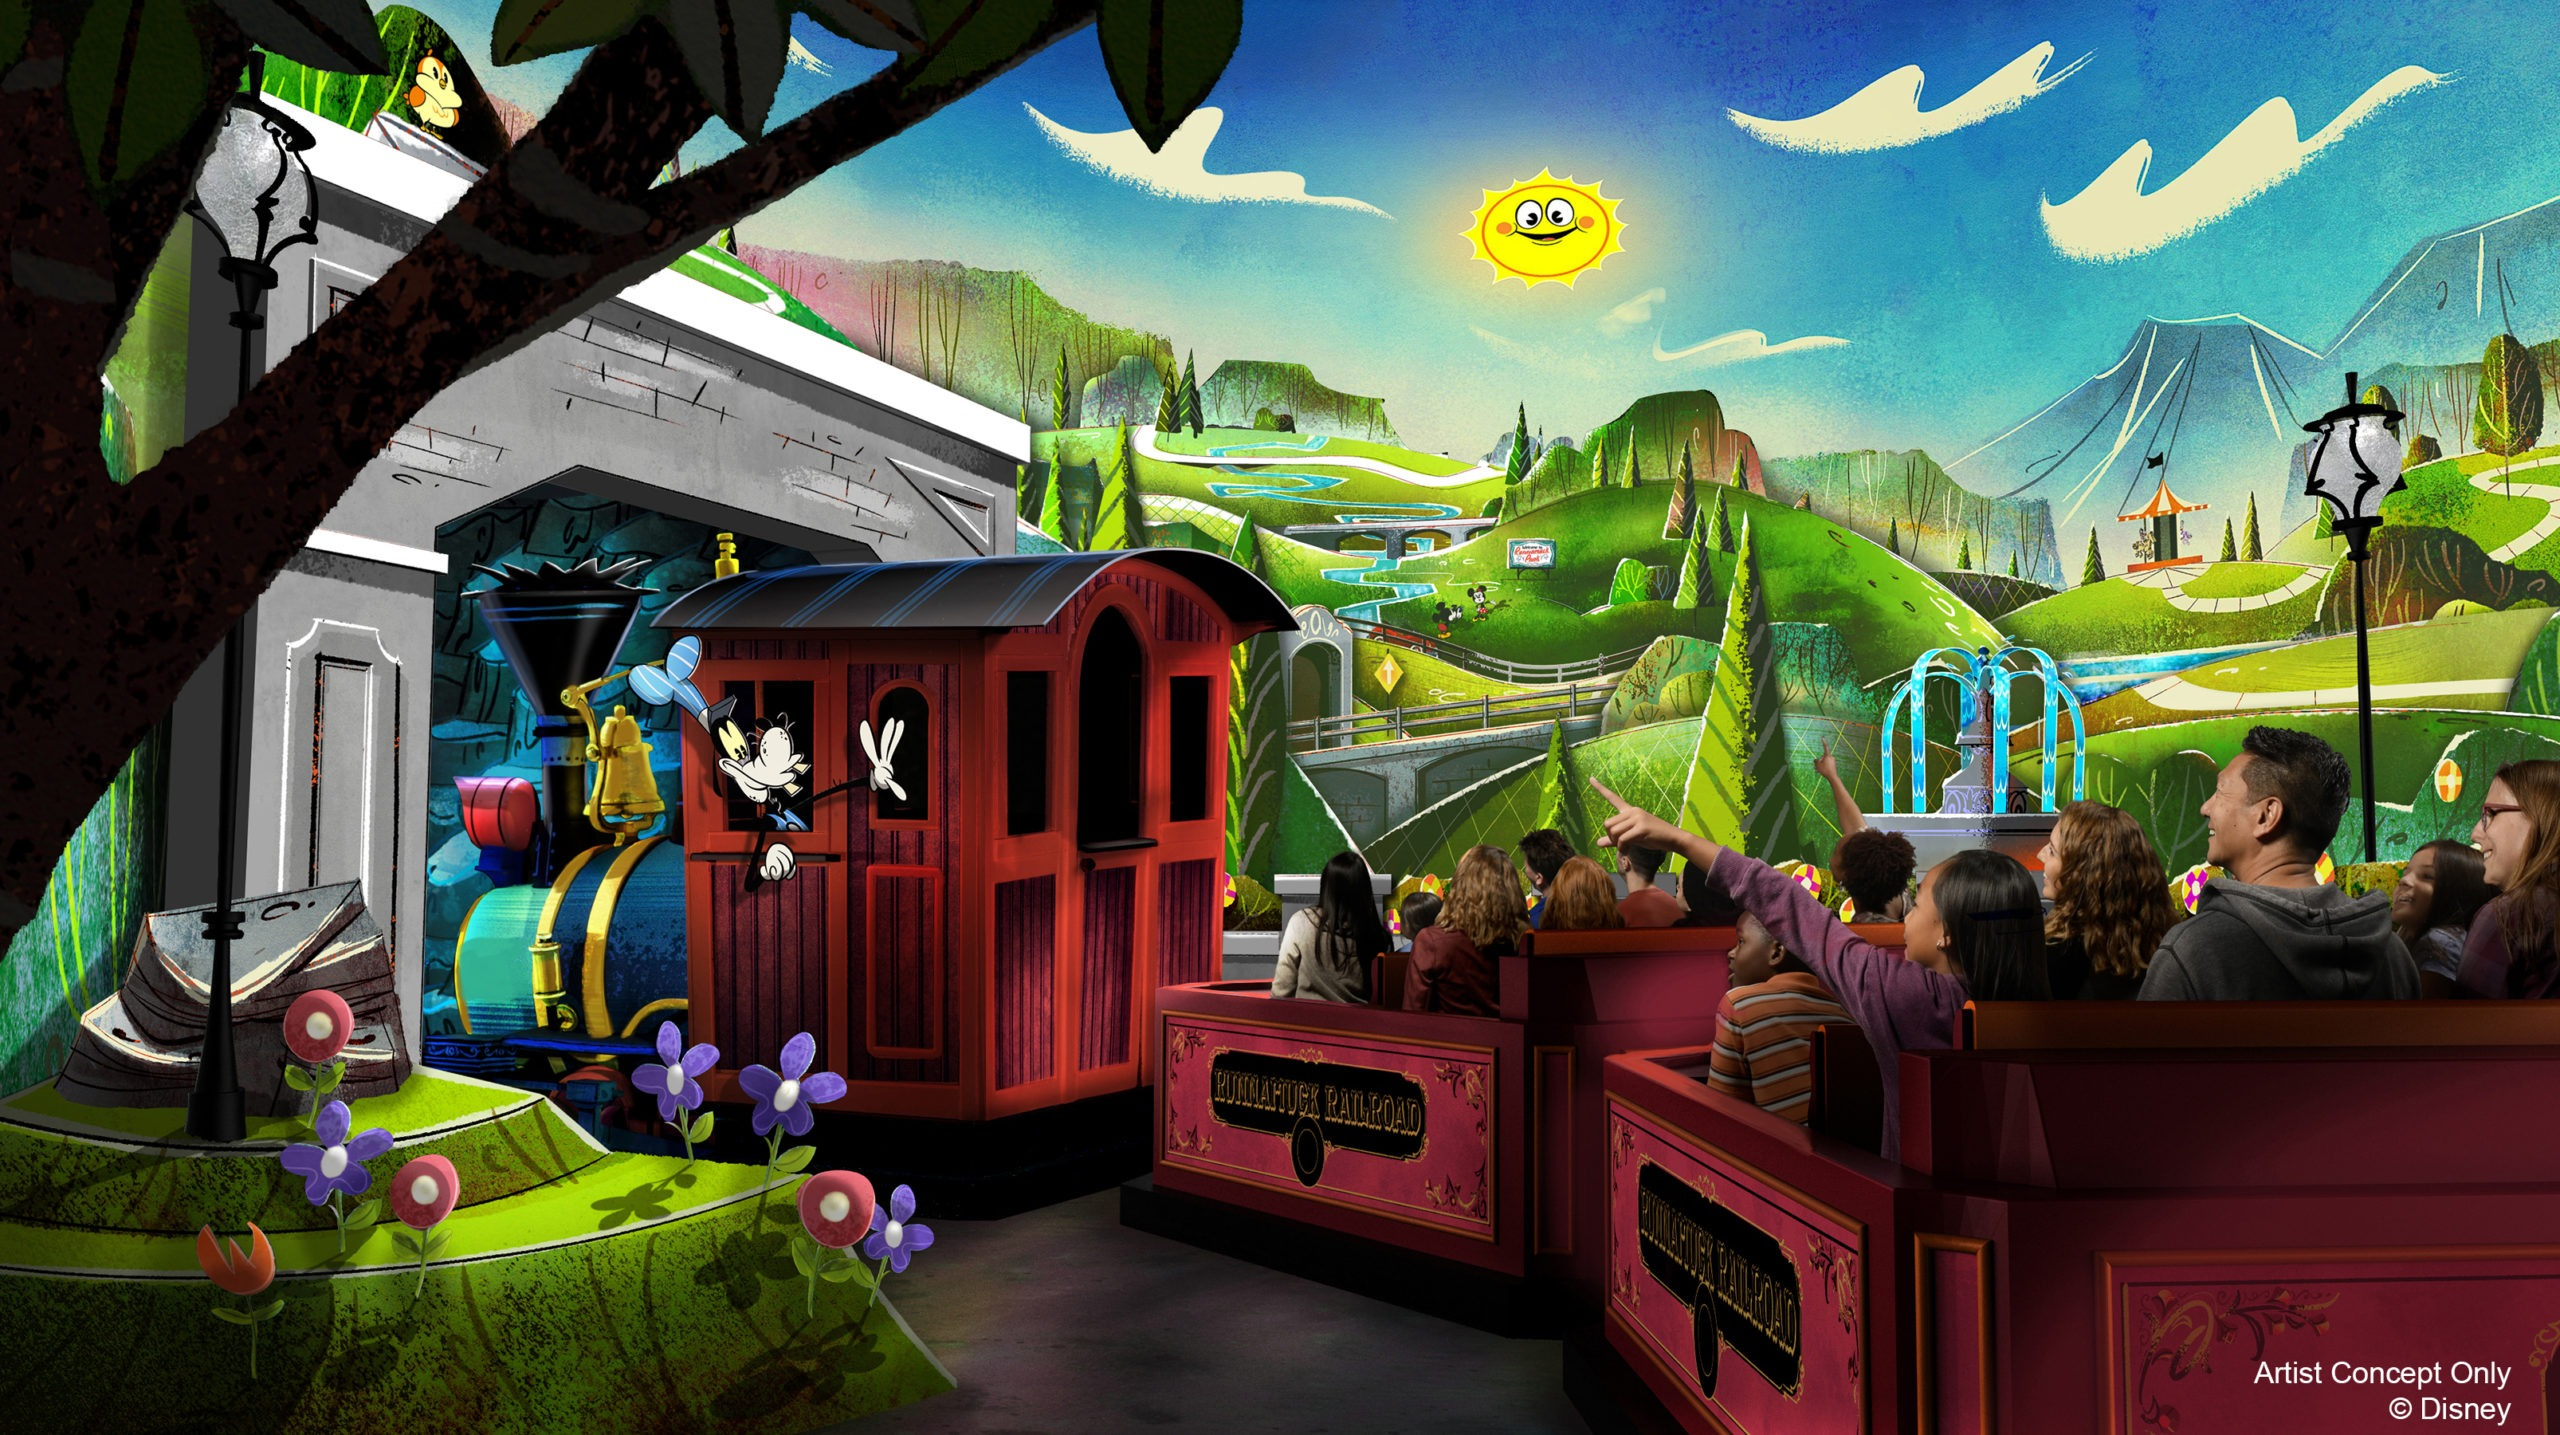 Mickey & Minnie's Runaway Railway at Disney's Hollywood Studio